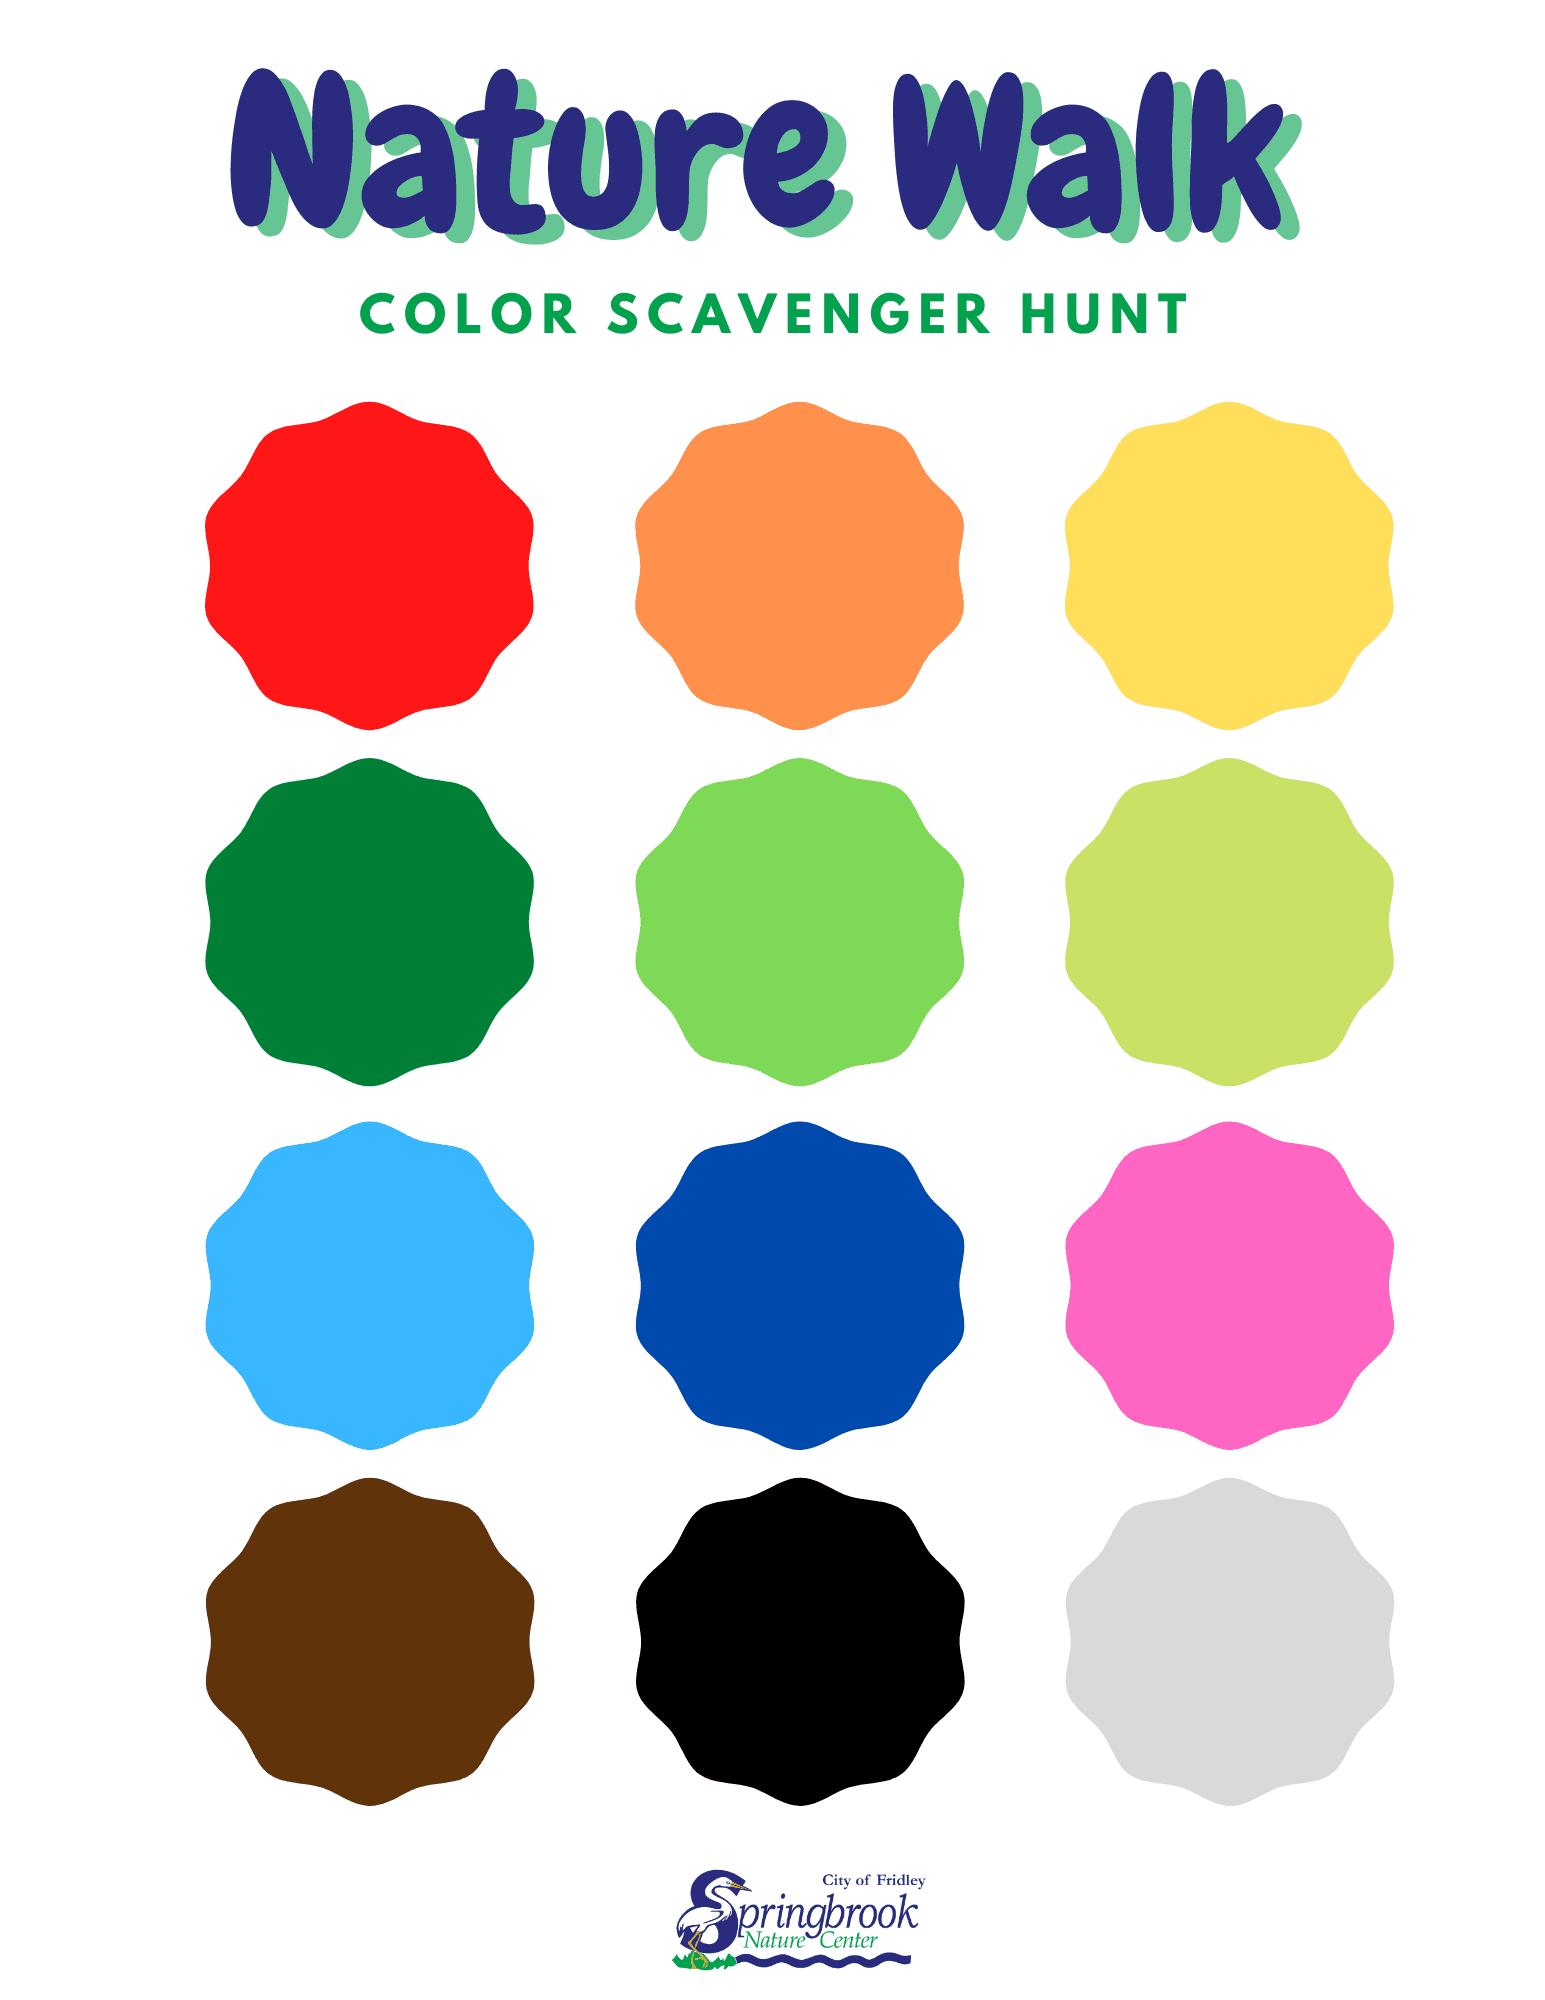 Color Scavenger Hunt Opens in new window